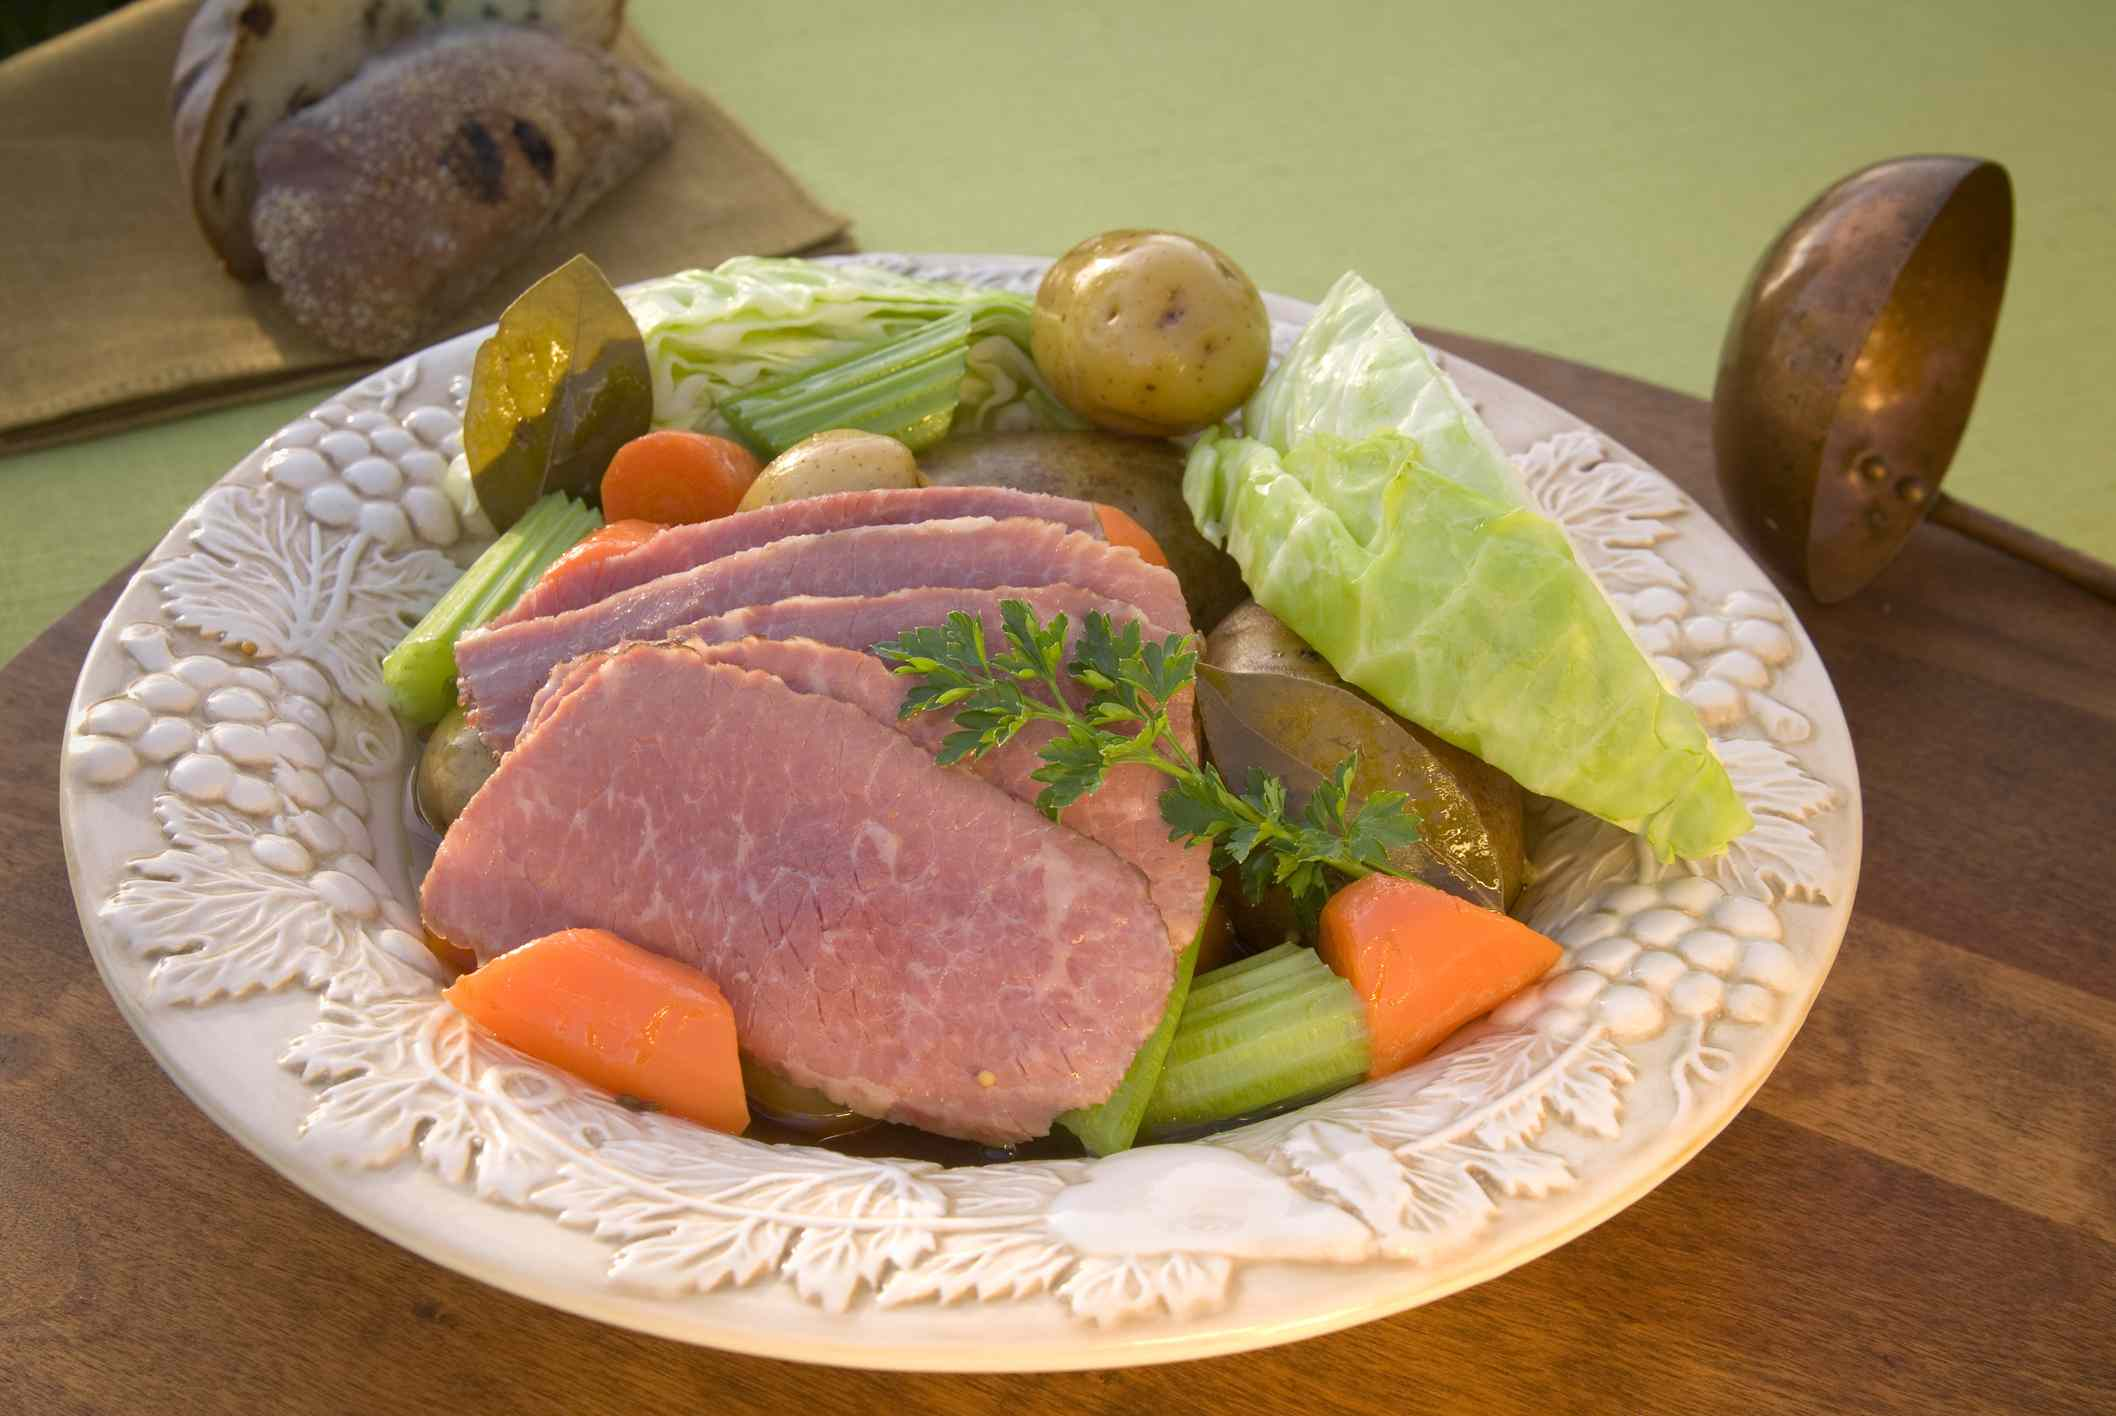 Corned beef and cabbage in a large decorative bowl